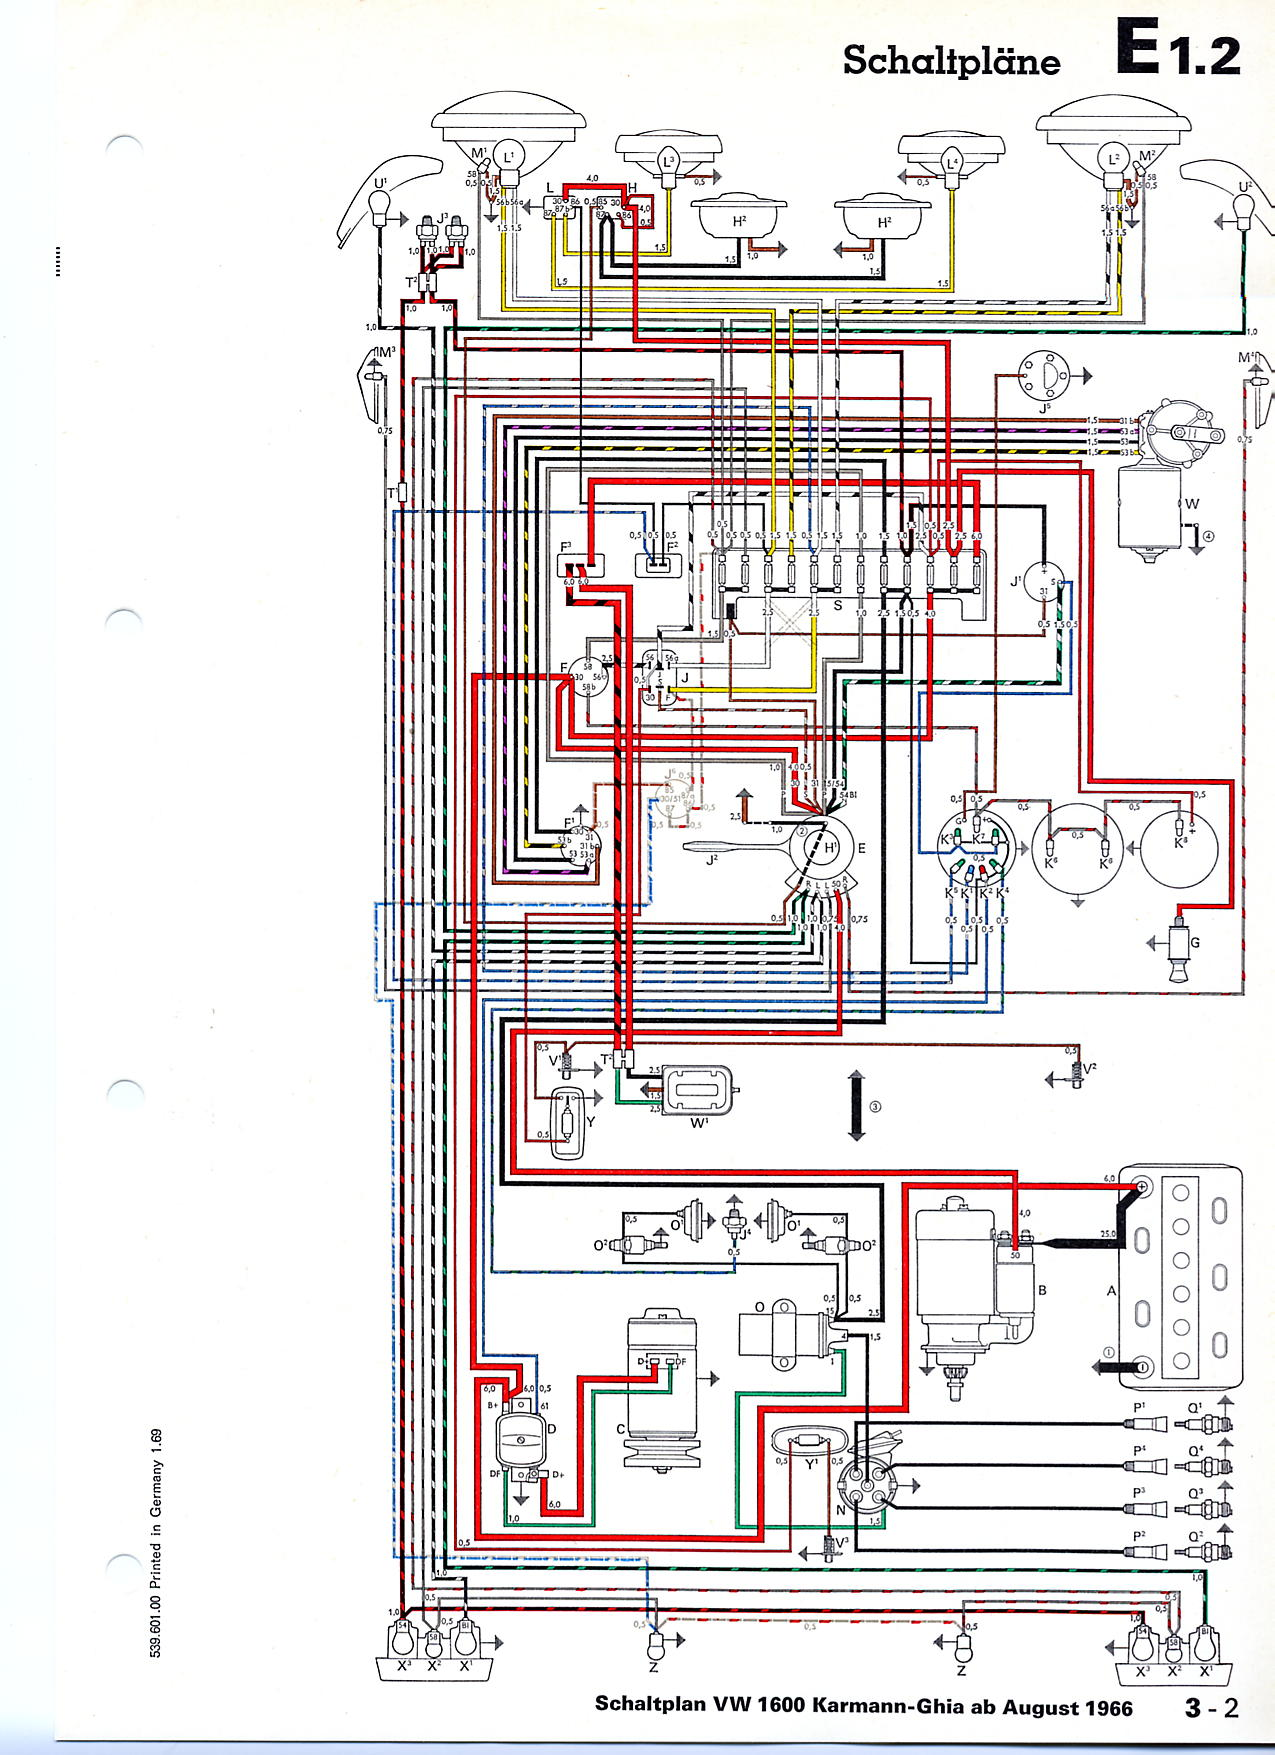 Subaru Ej22 Wiring Harness Change Your Idea With Diagram Clarion Wire Library Rh 99 Yoobi De 2015 Legacy Interface